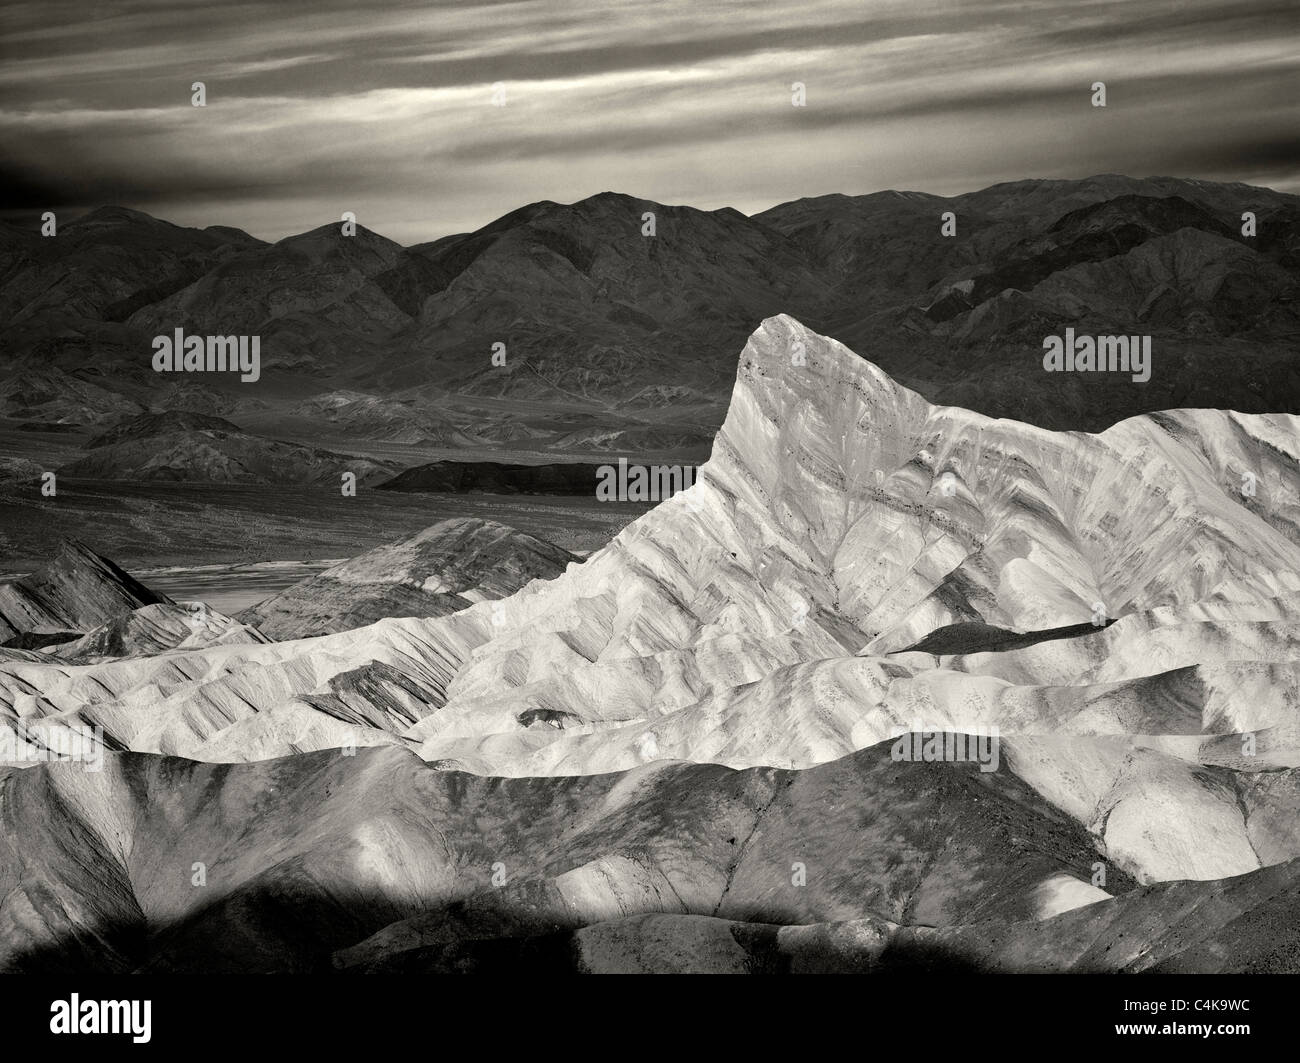 Manly Peak from Zabriskie Point sunrise. Death Valley National Park, California - Stock Image